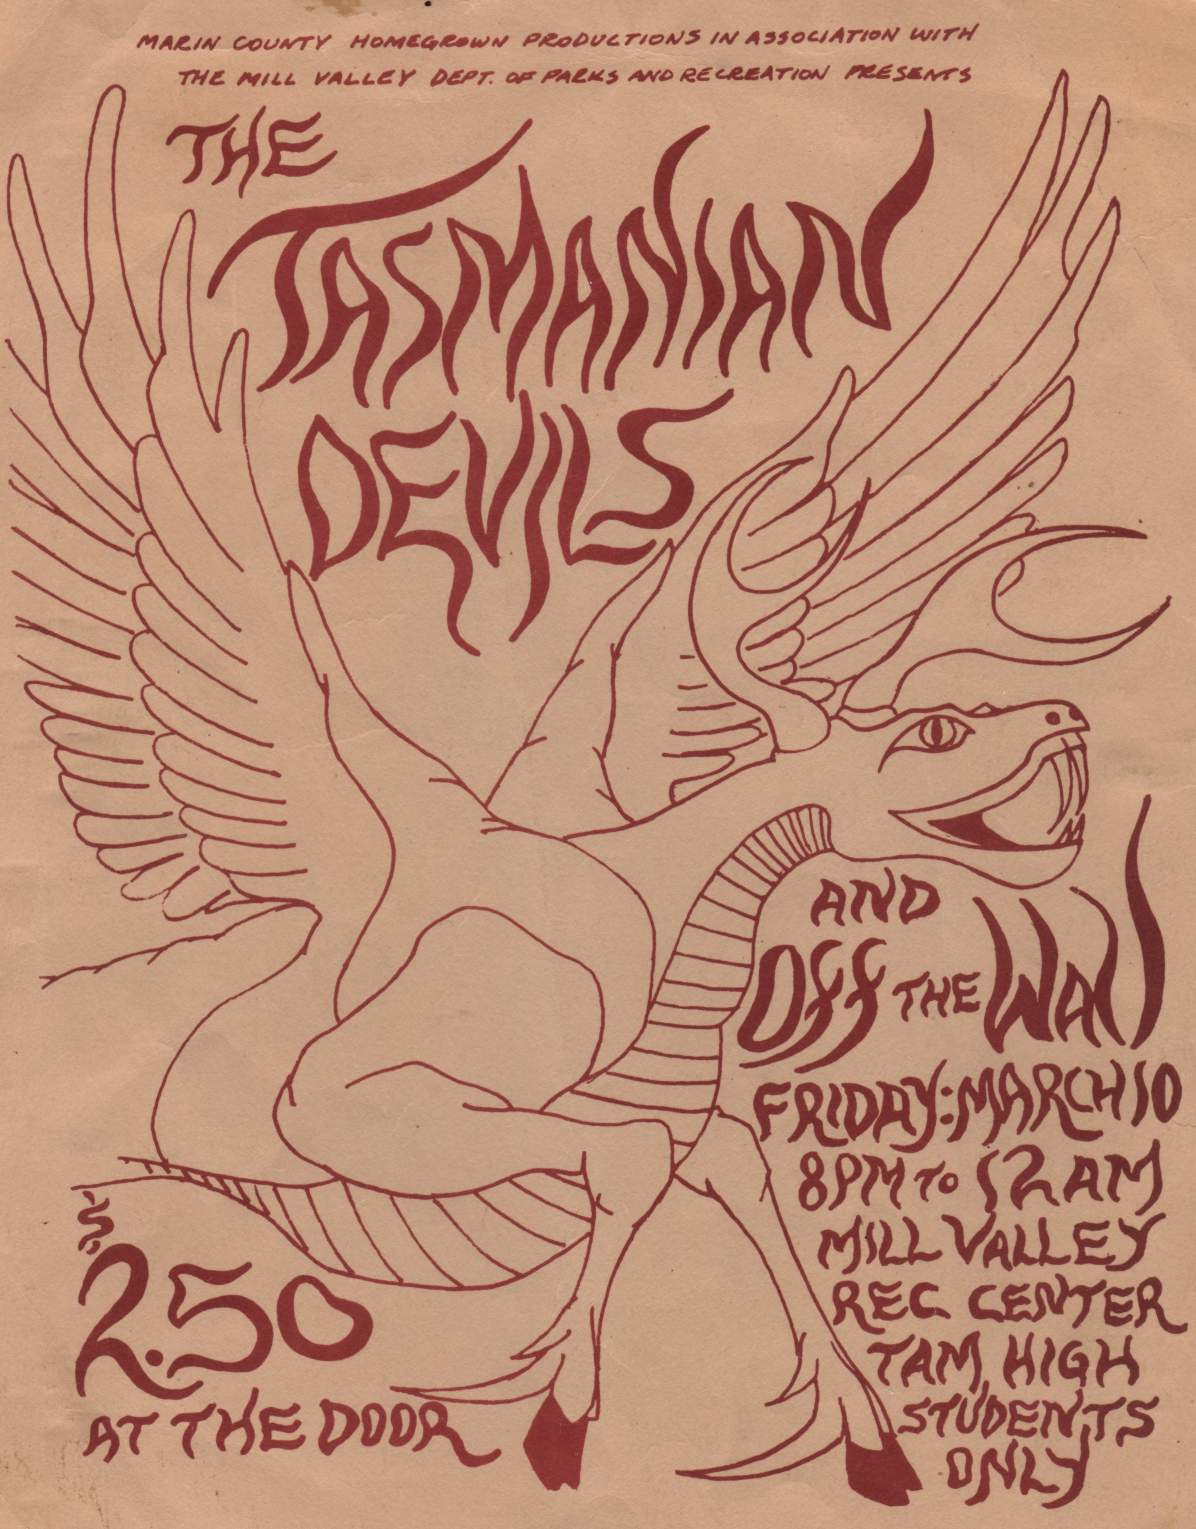 Off The Wall, opening for the Tasmanian Devils, My First Paying Gig!